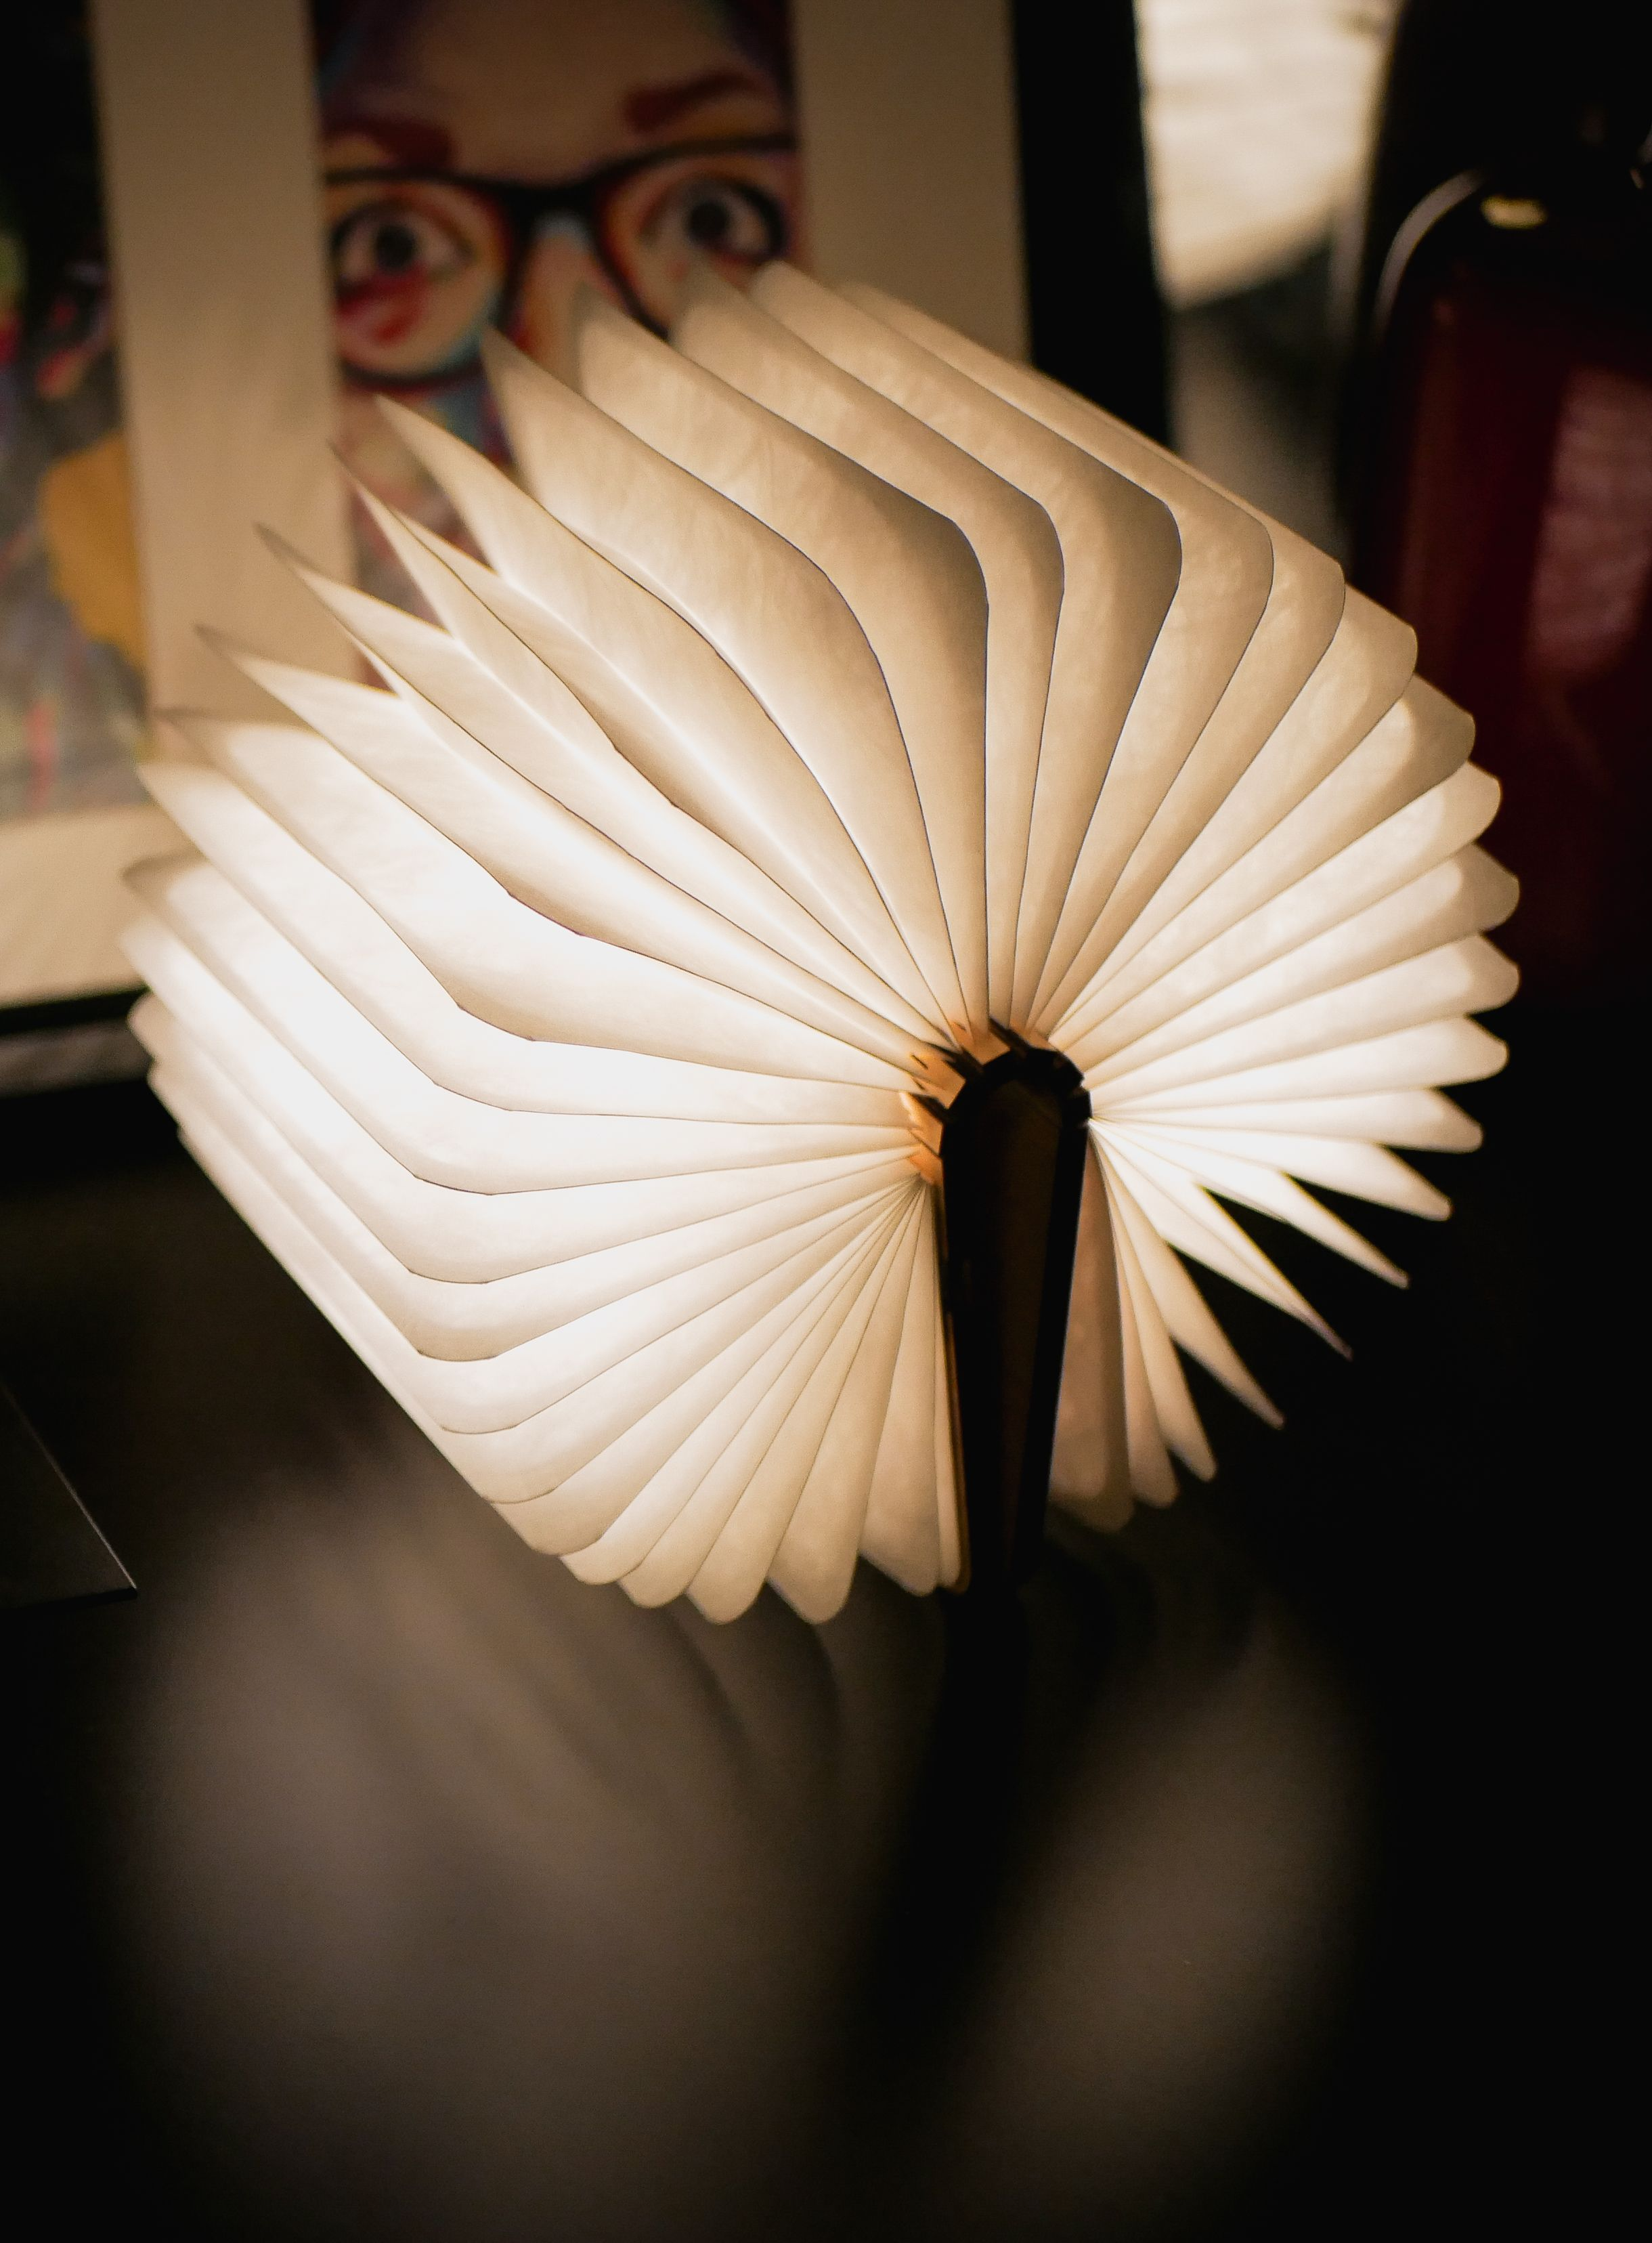 Pin By Pavel Mazov On Cool Gadgets Book Lamp Wooden Books Lamp